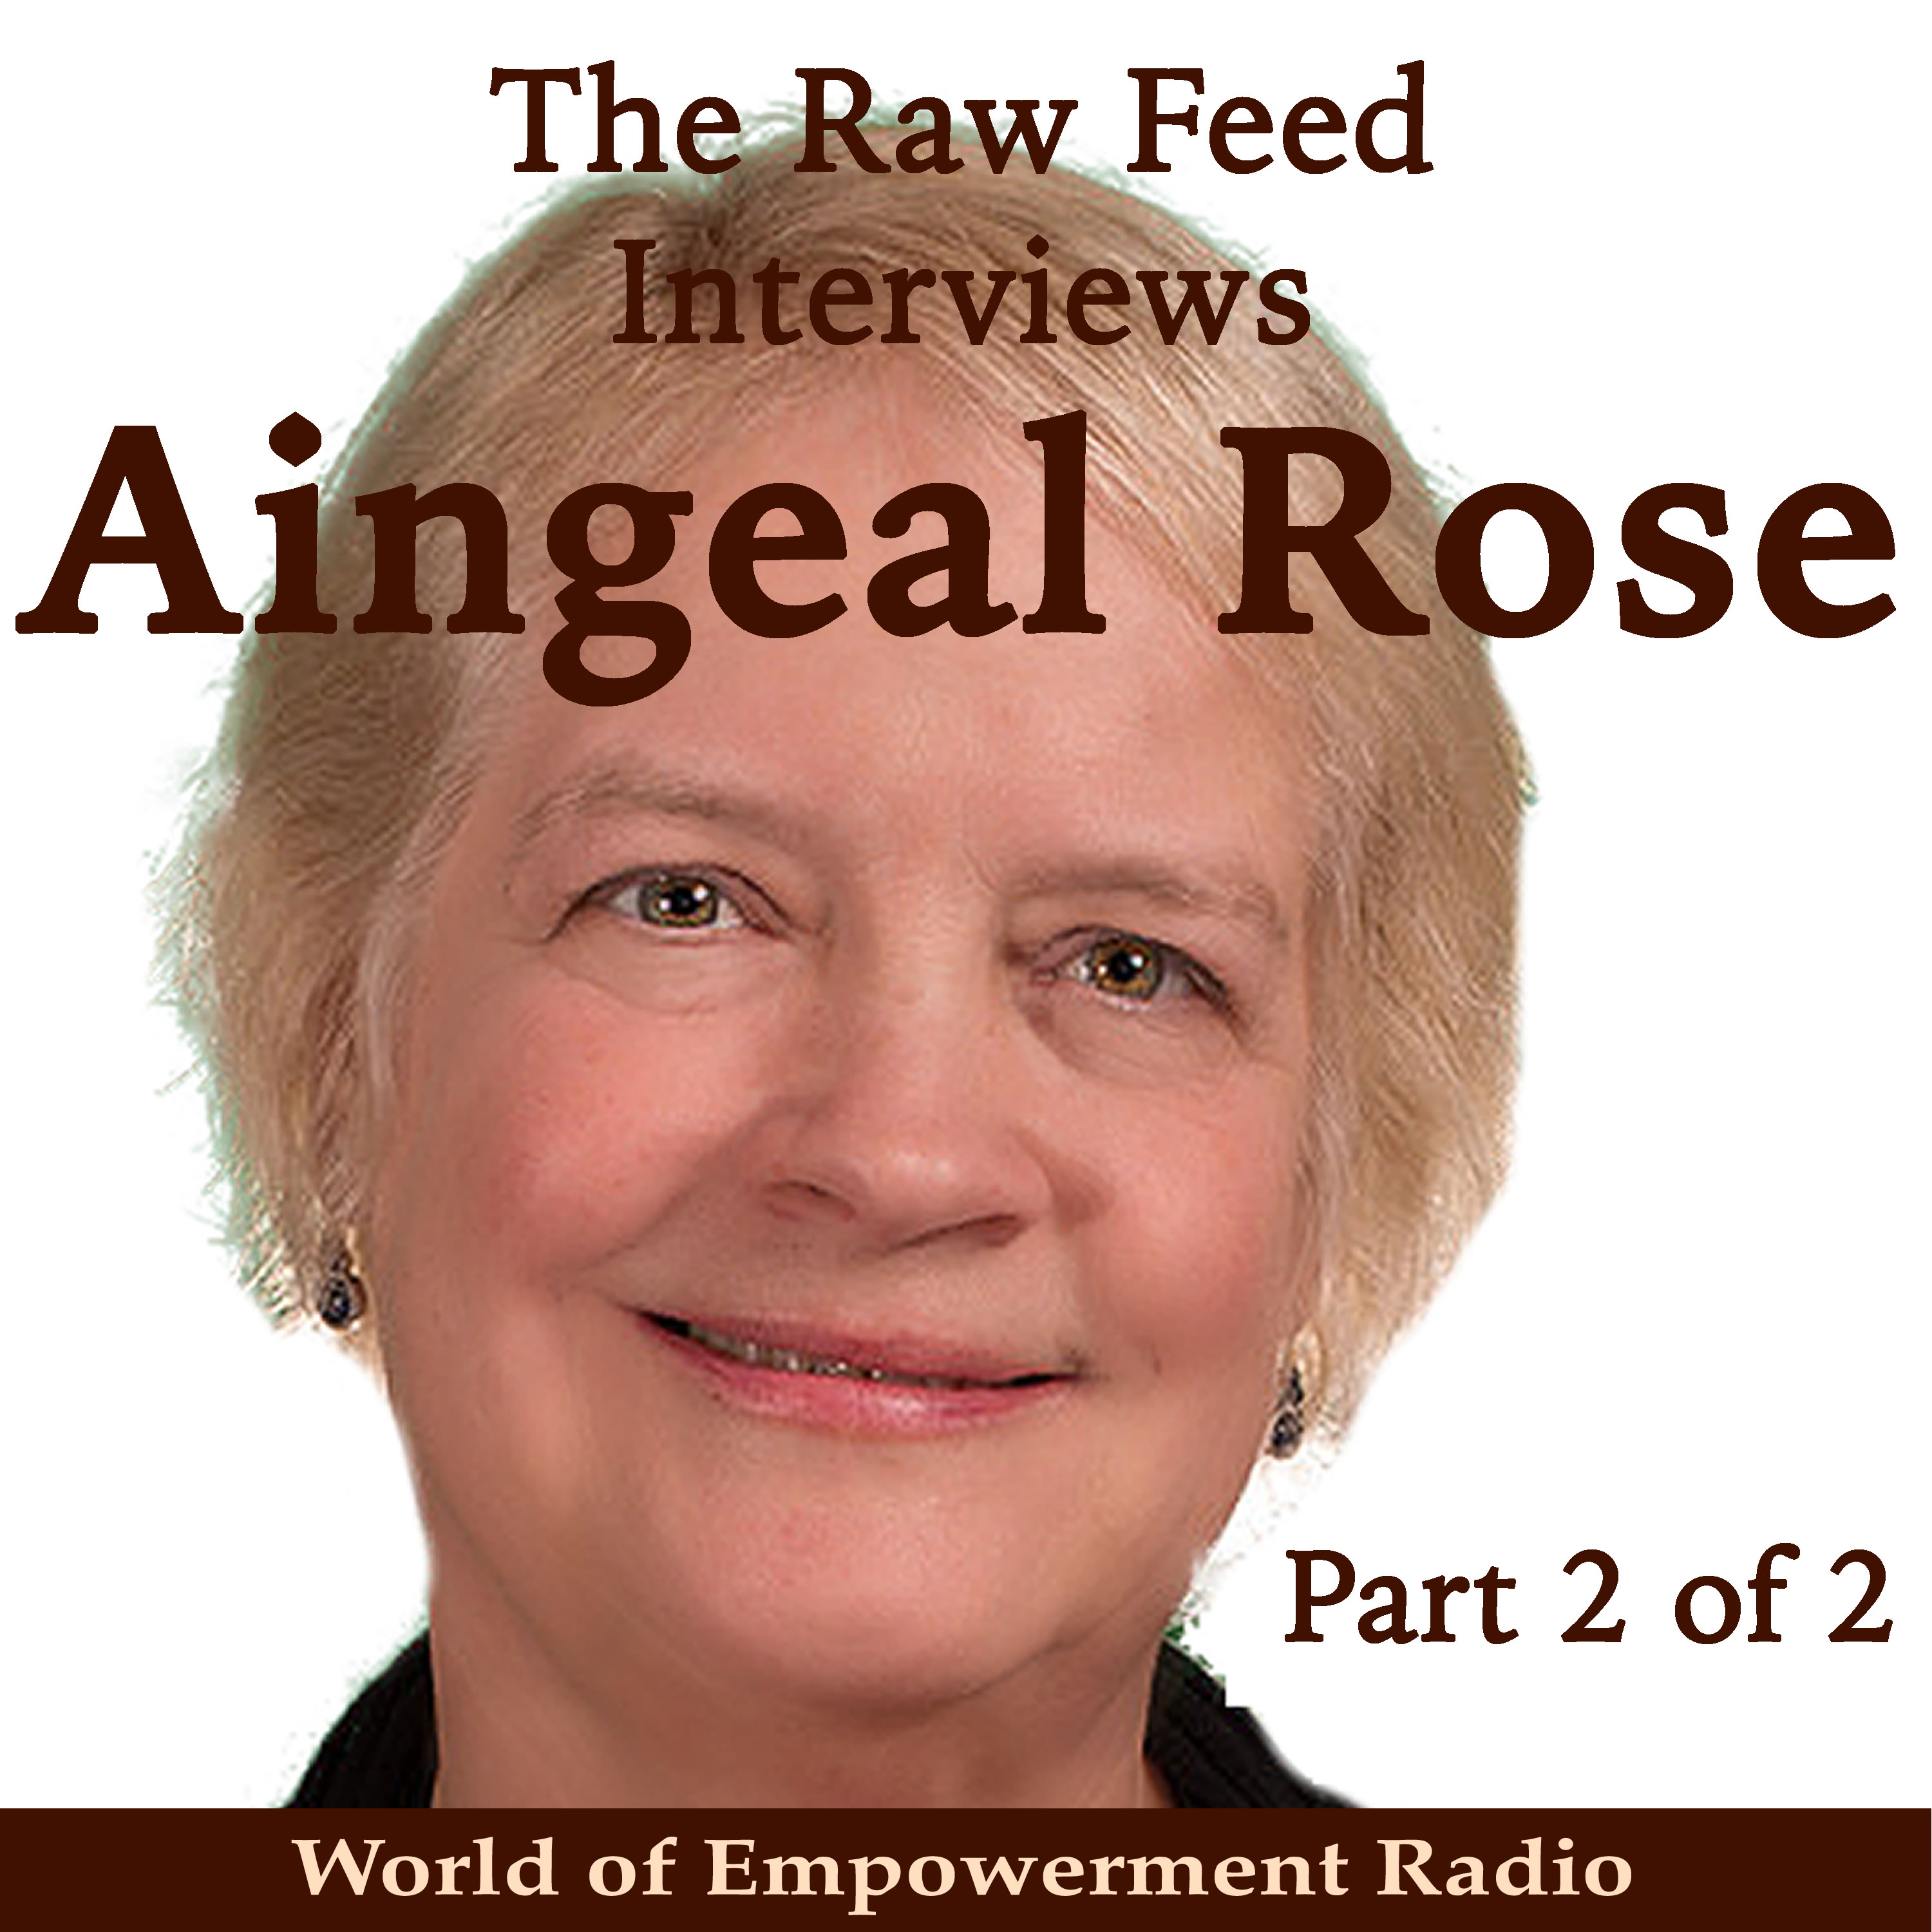 The Raw Feed interviews Aingeal Rose